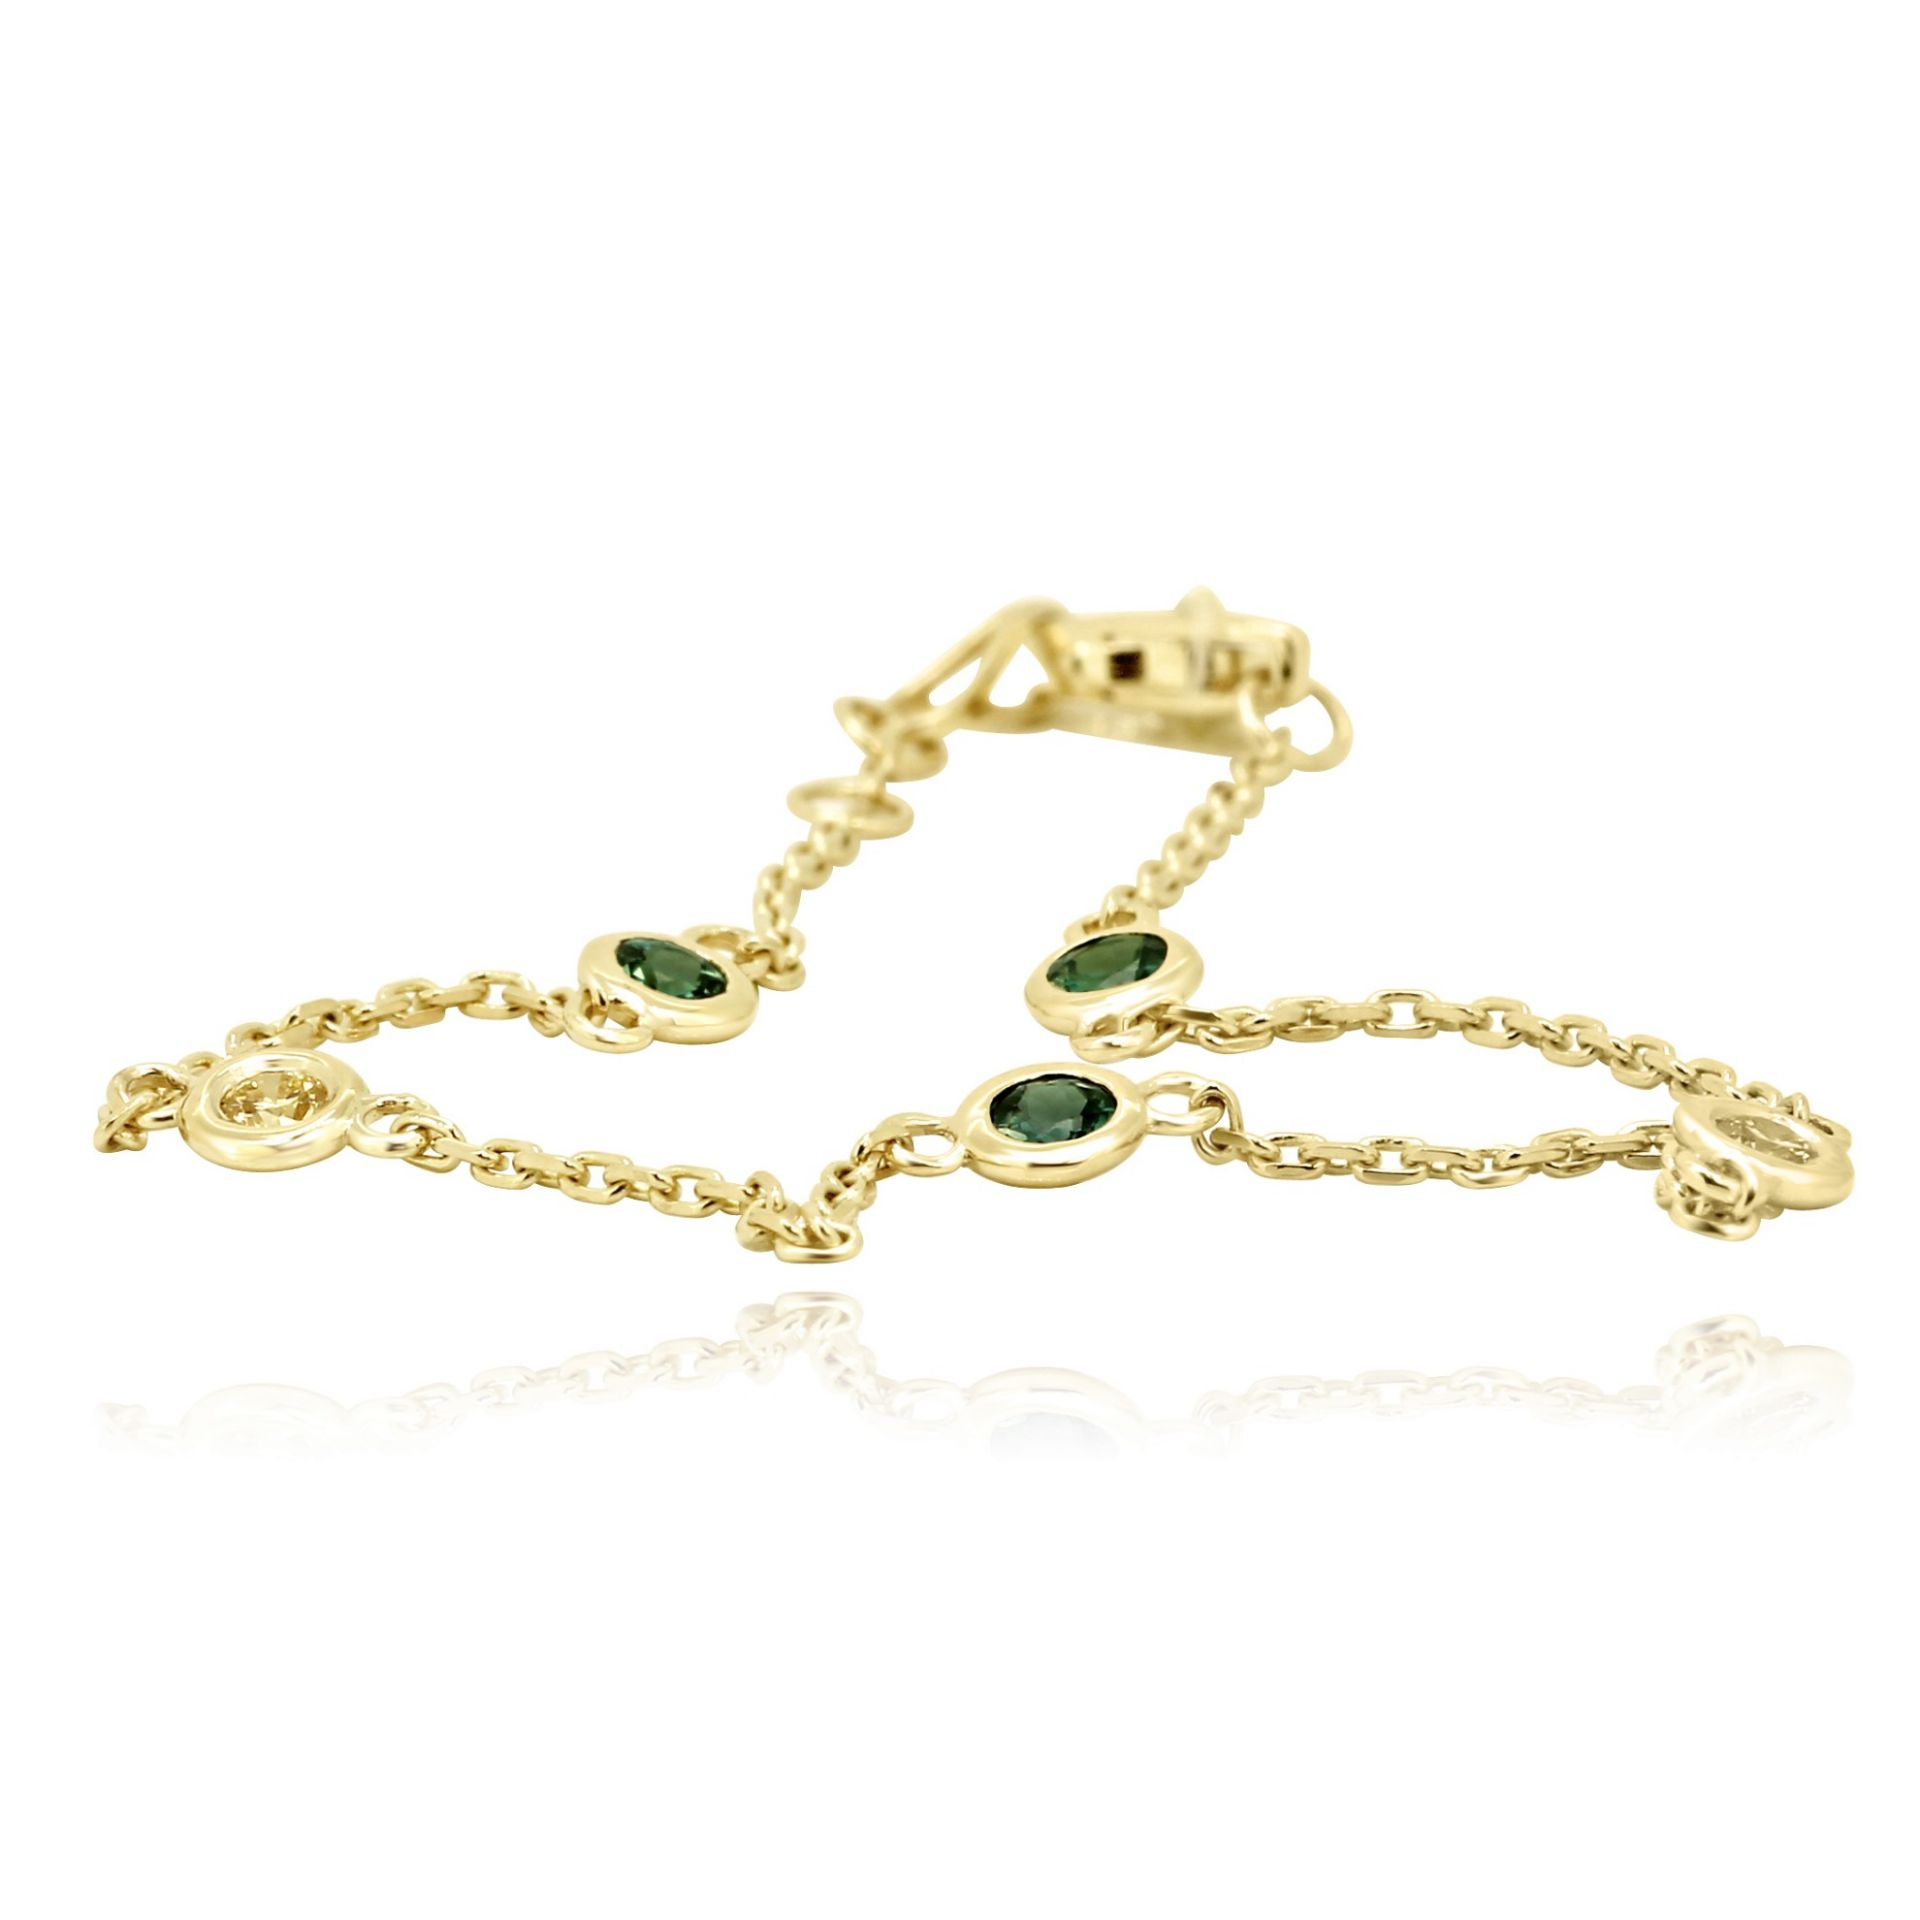 Alexandrite Fancy Yellow Diamonds Diamond By yard Chain Gold Bracelet Anklets